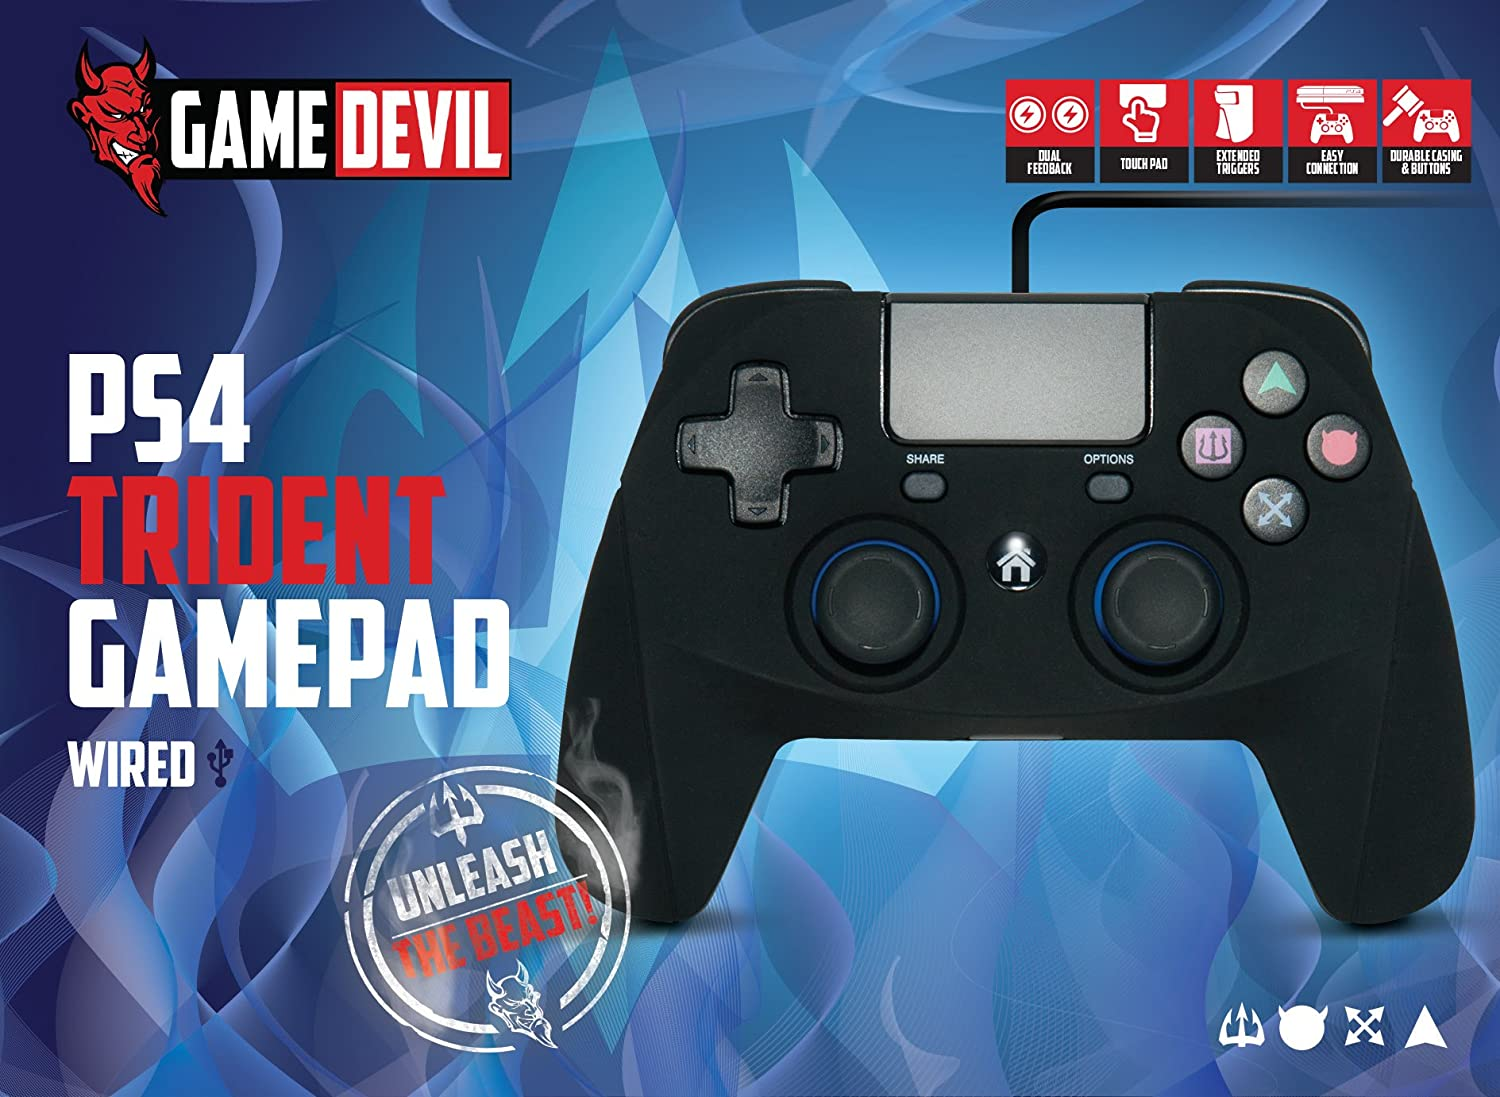 Game Devil Trident Wired Game Pad (PS4/PS3): Amazon.co.uk: PC ...